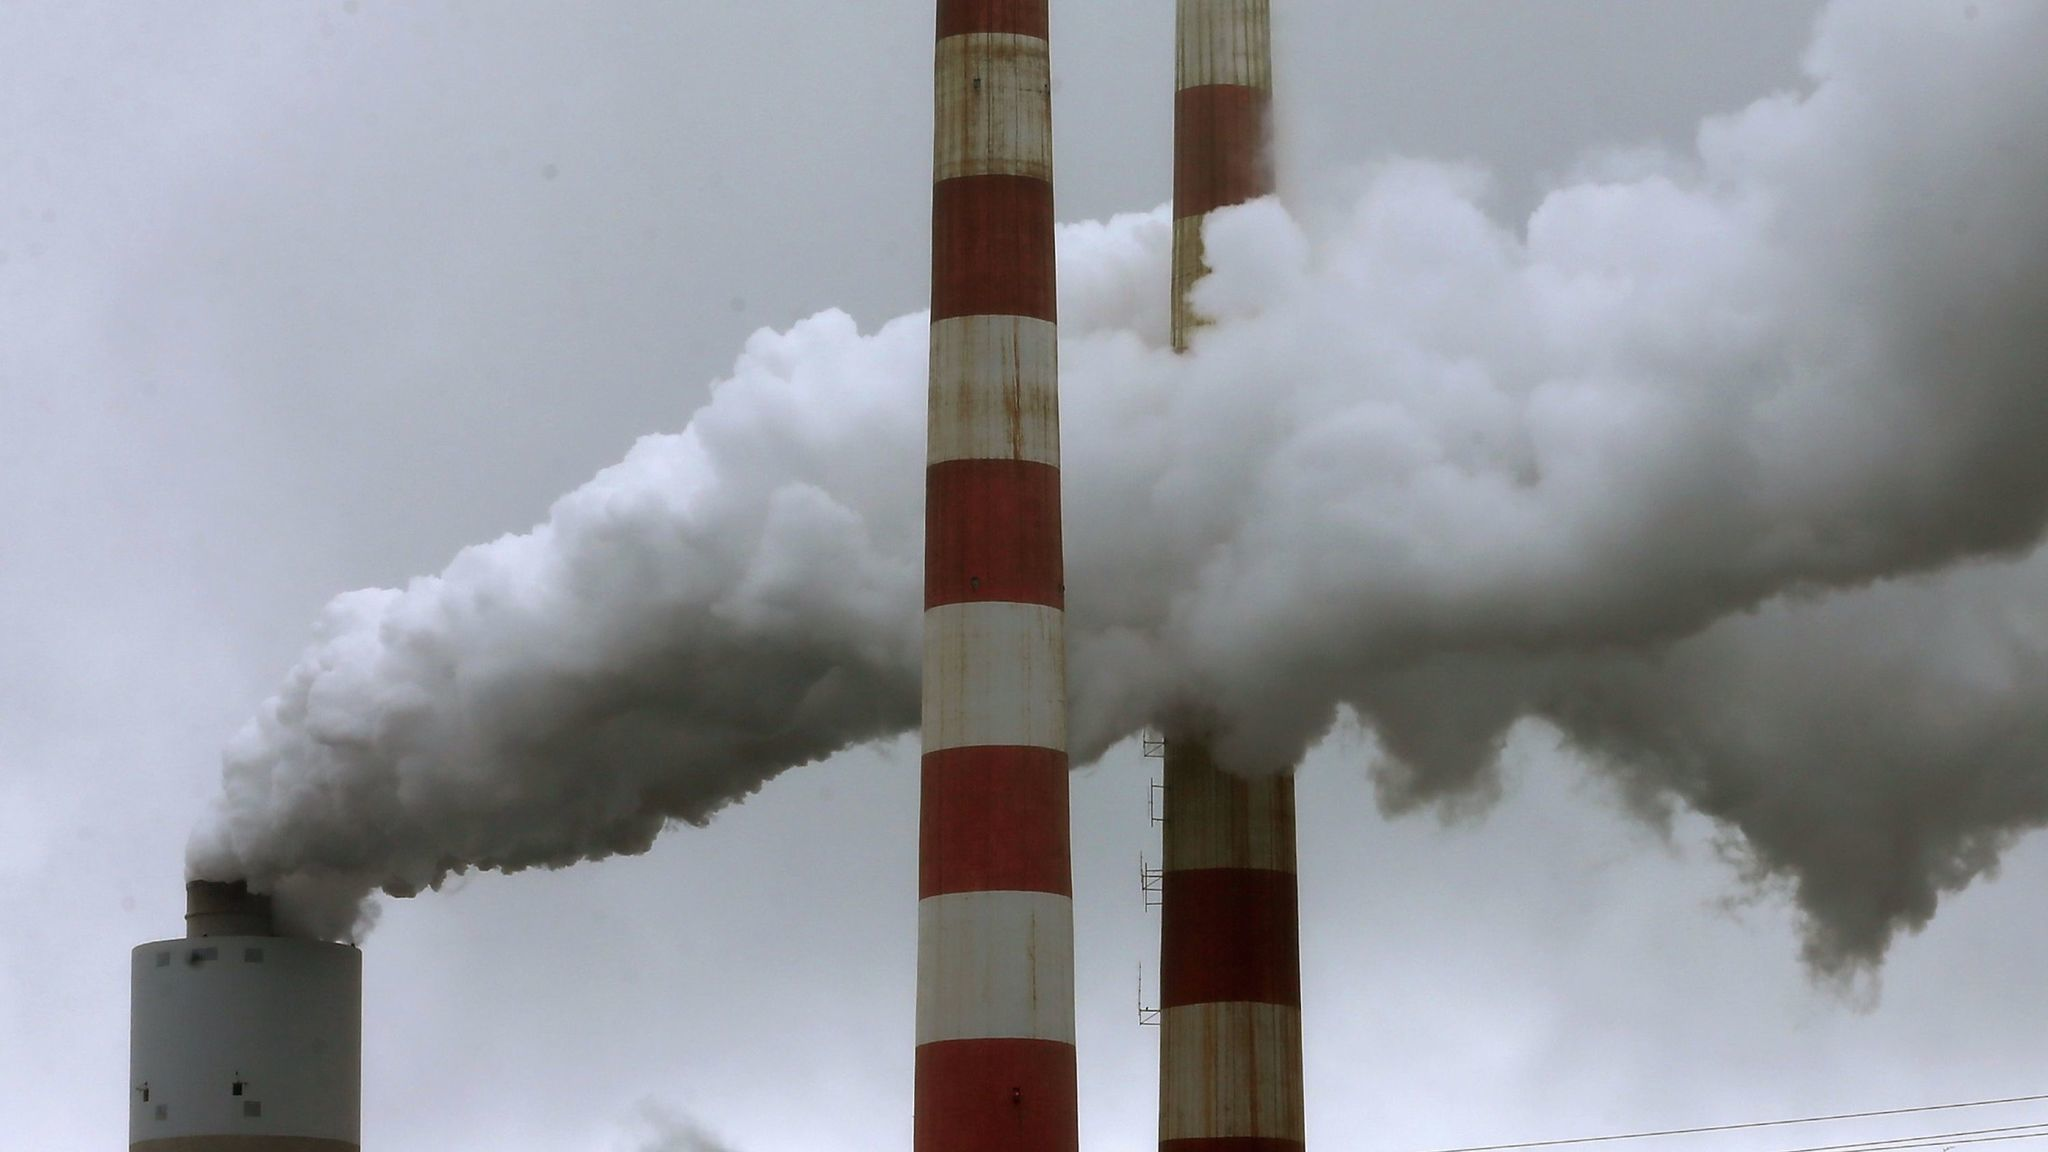 Emissions spew from a large stack at a coal-fired power plant in Newburg, Md.